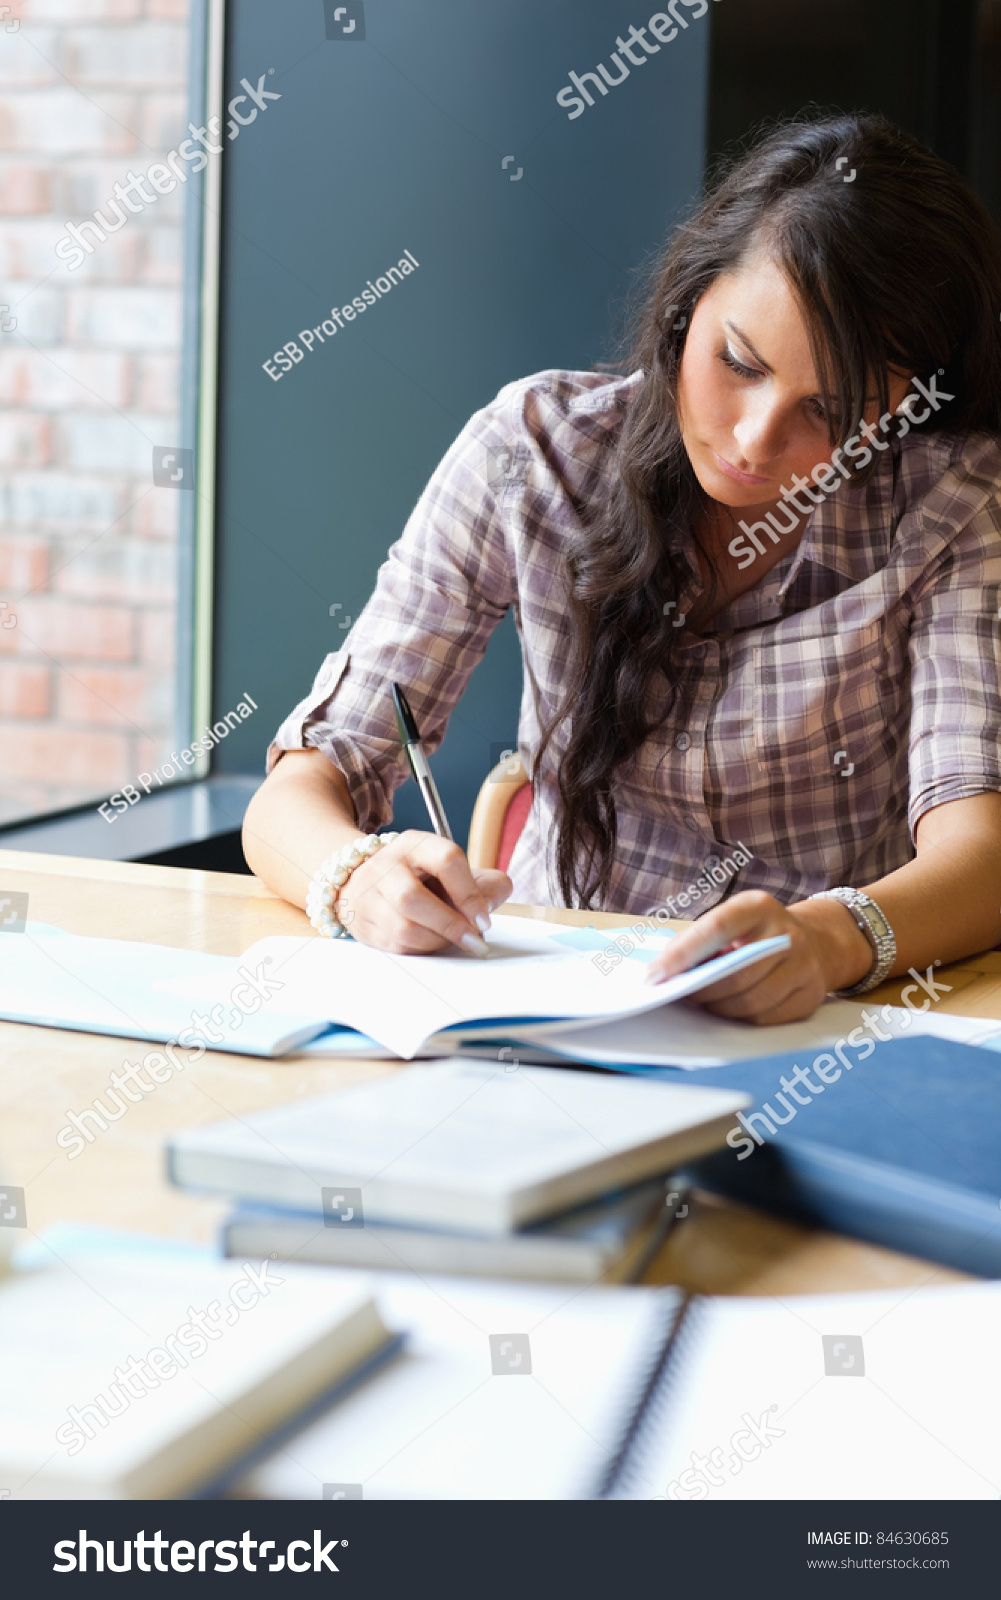 portrait beautiful student writing essay library stock photo portrait of a beautiful student writing an essay in a library